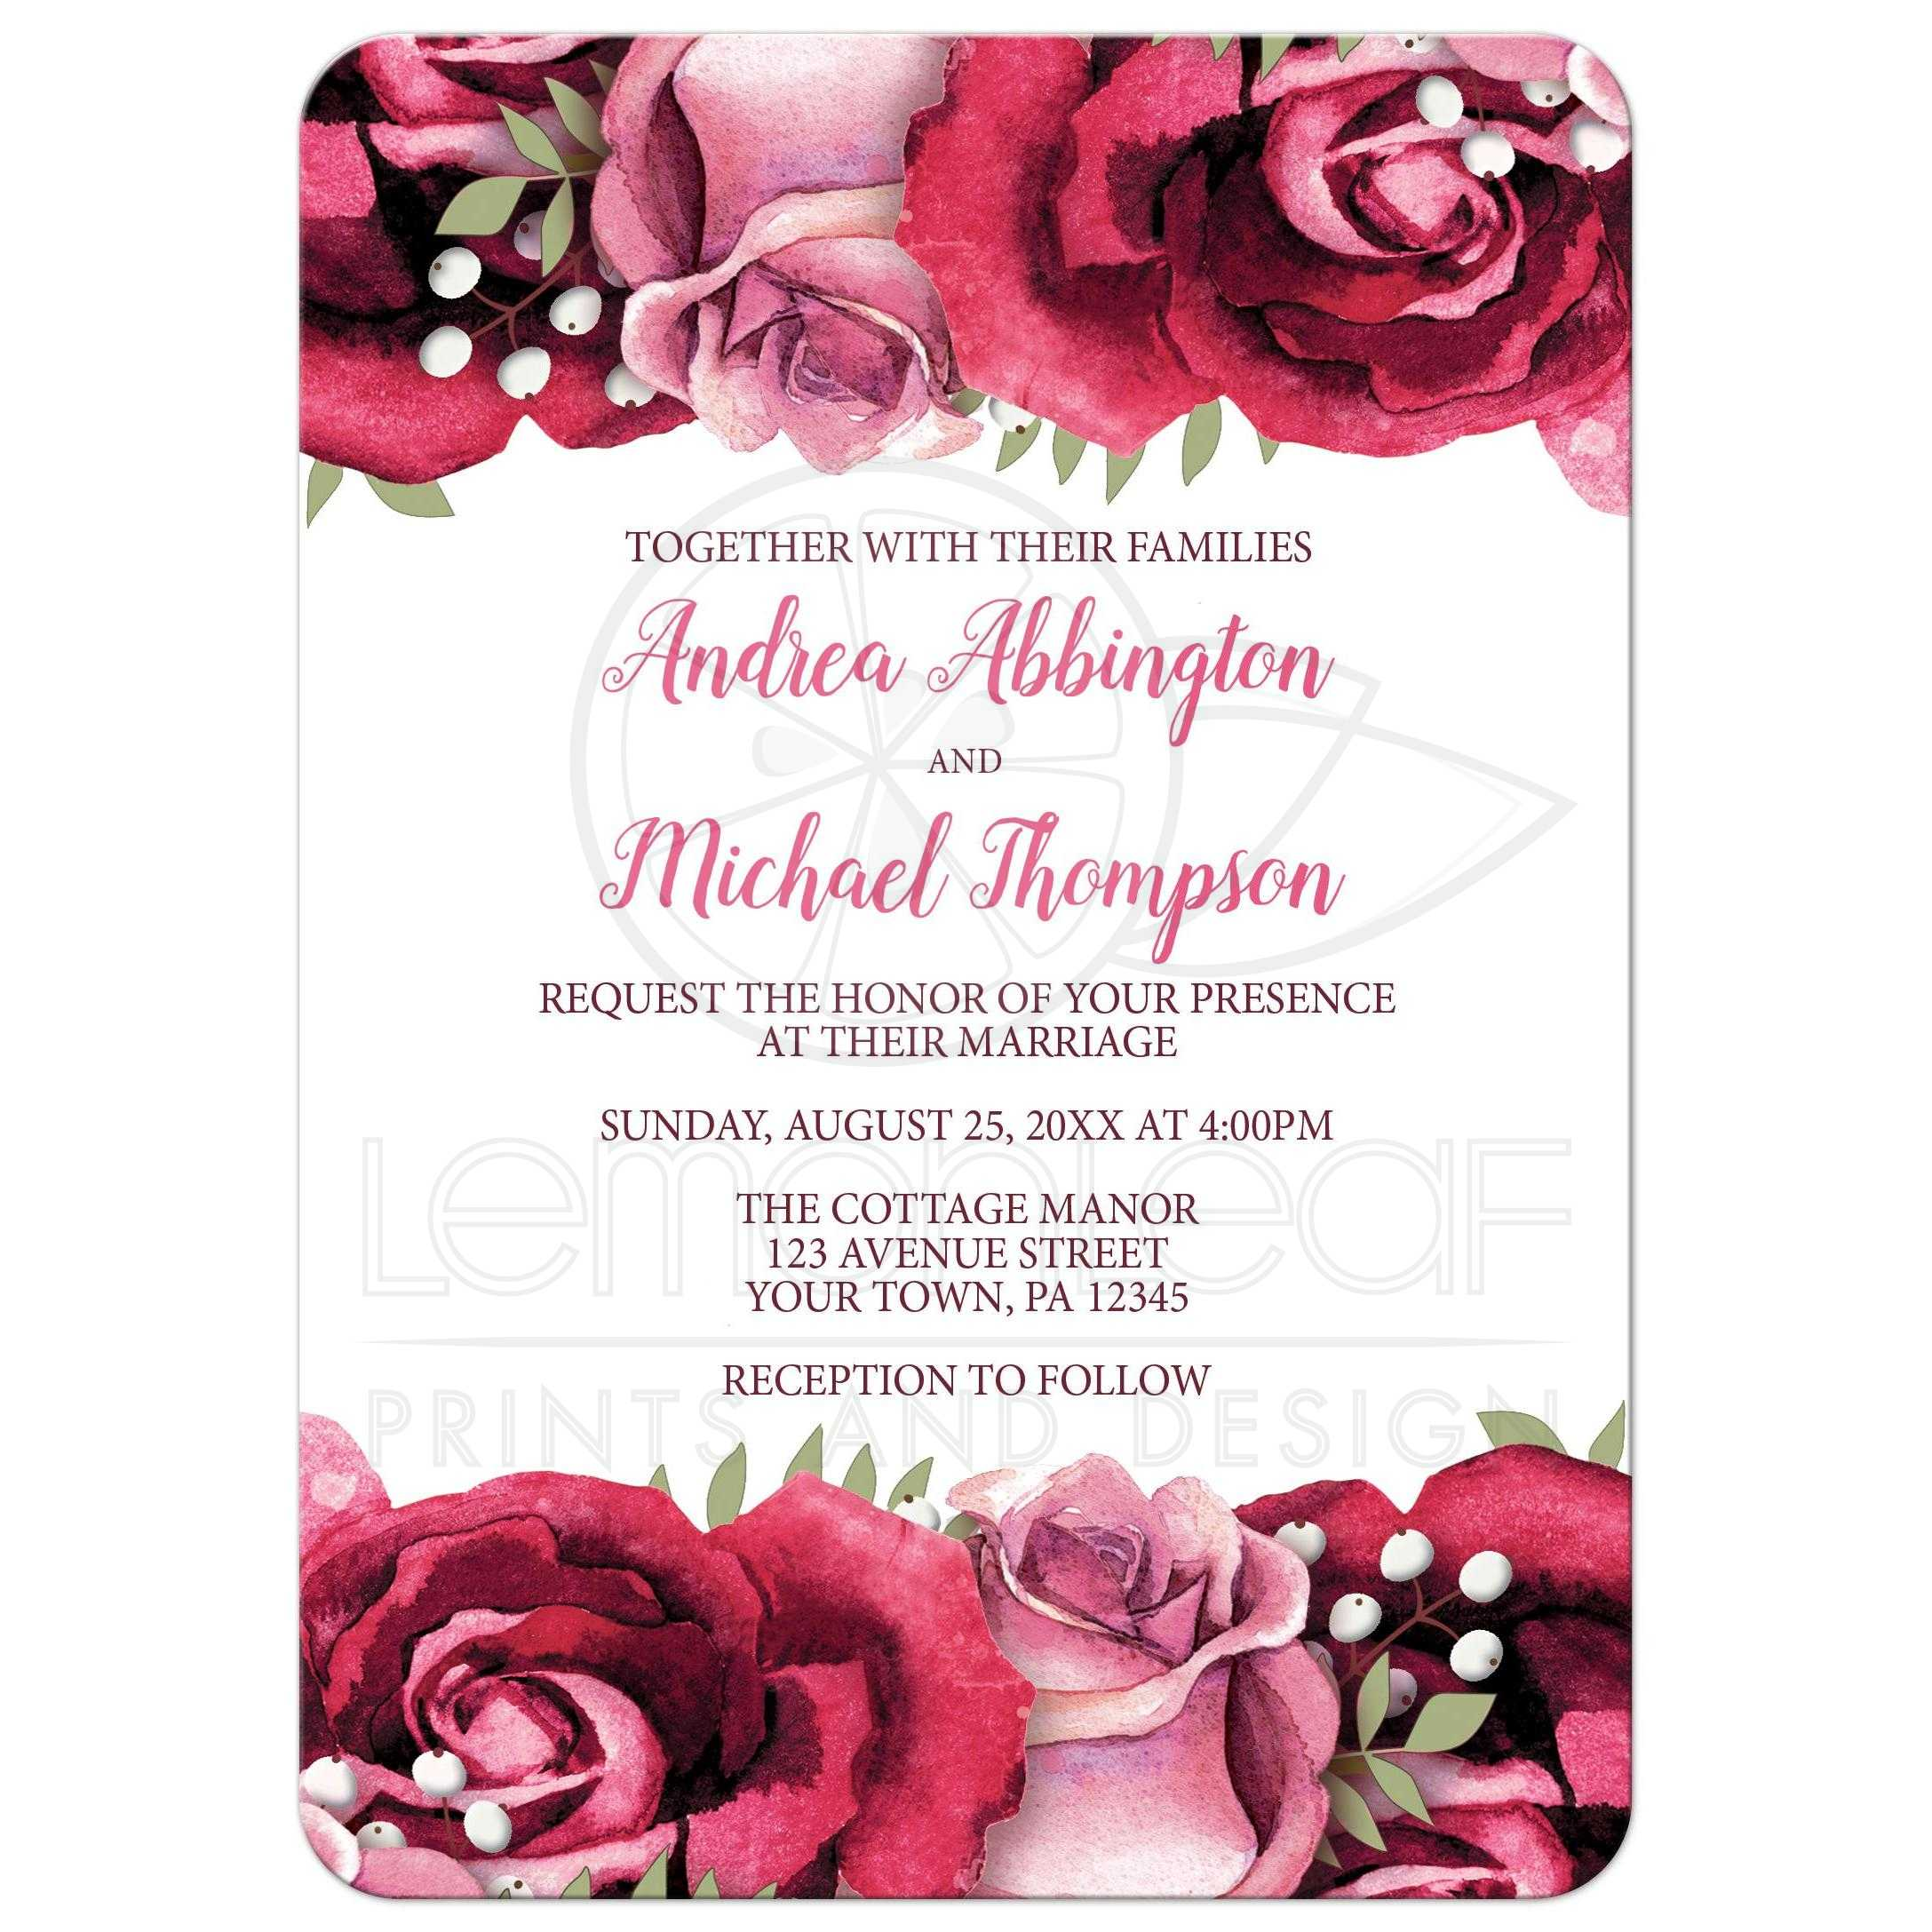 Cheap White Card Wedding Invitations Burgundy Pink Rose White Rustic